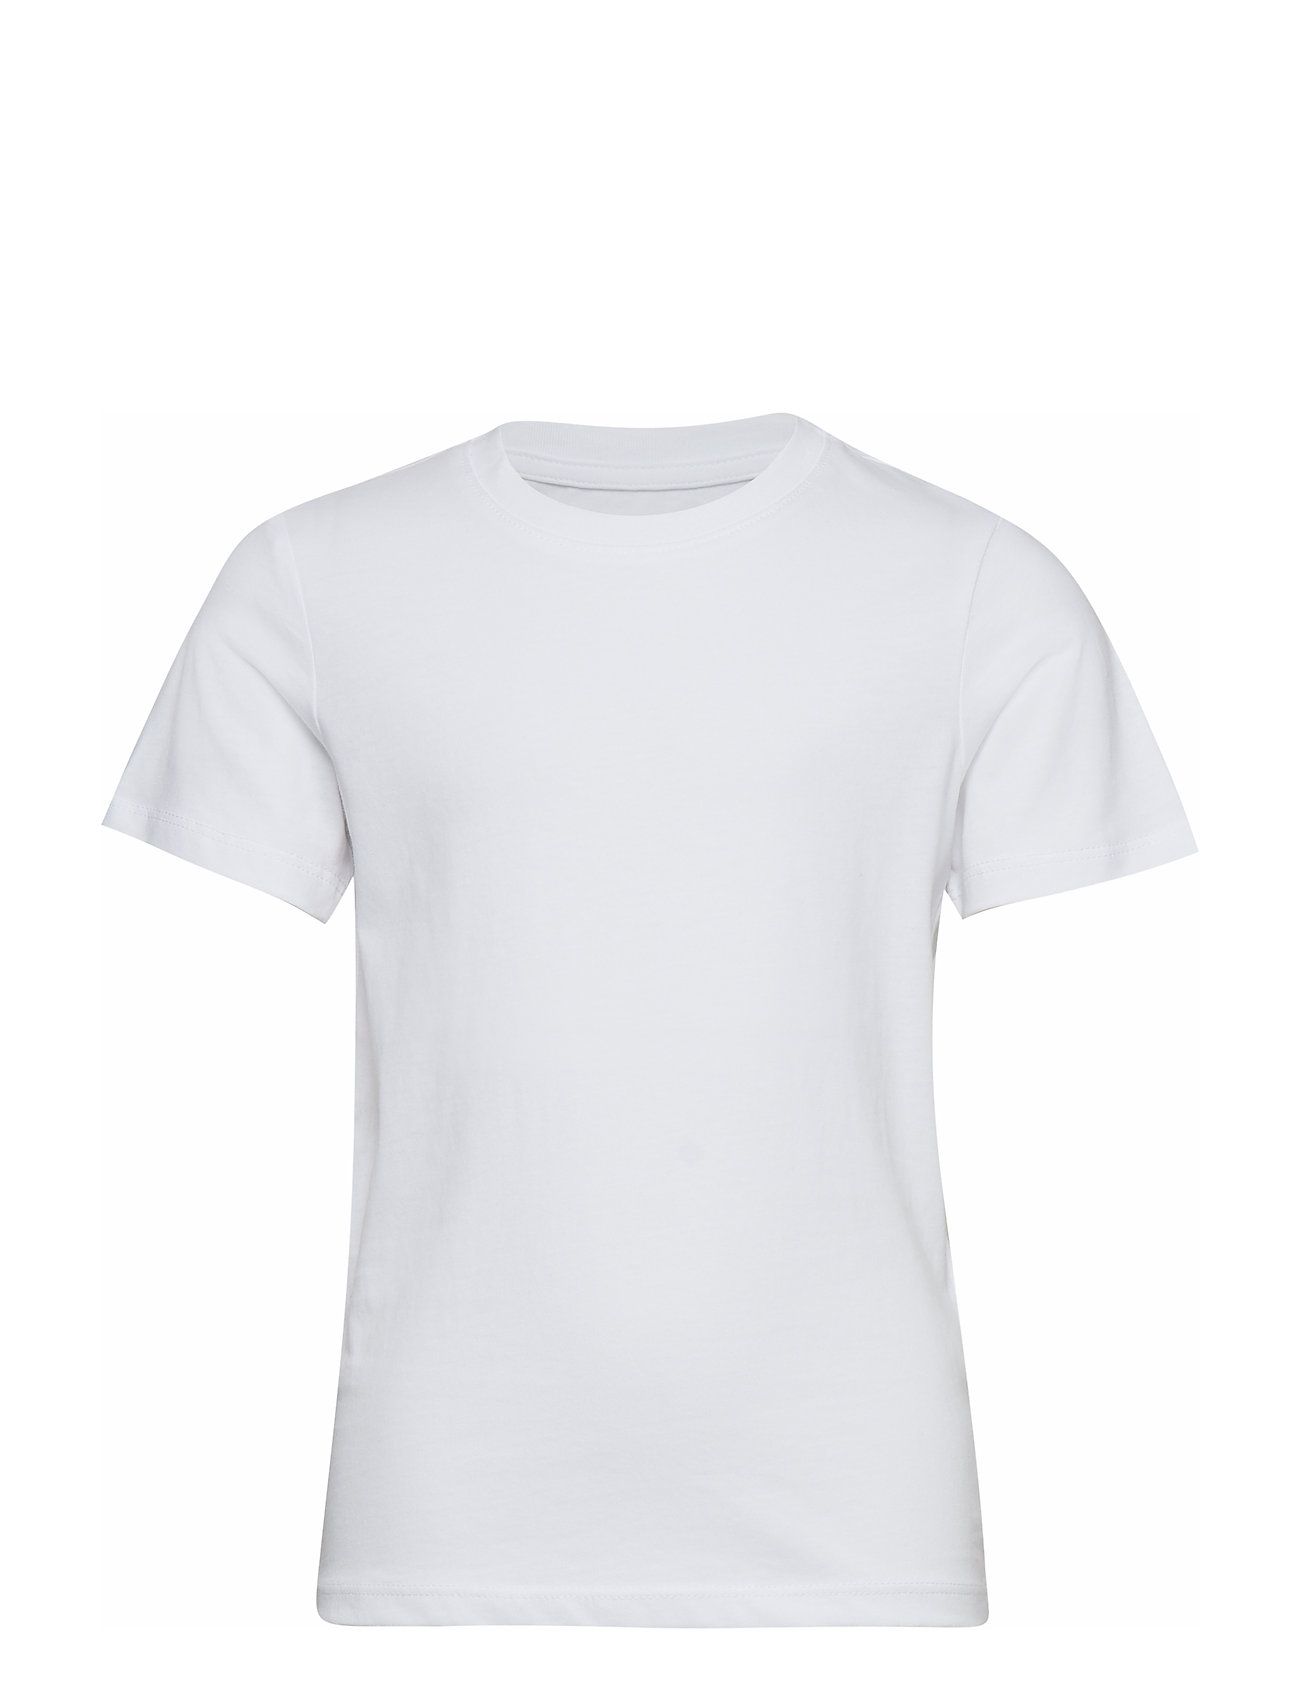 Jack & Jones JJEORGANIC BASIC TEE SS O-NECK JR - WHITE